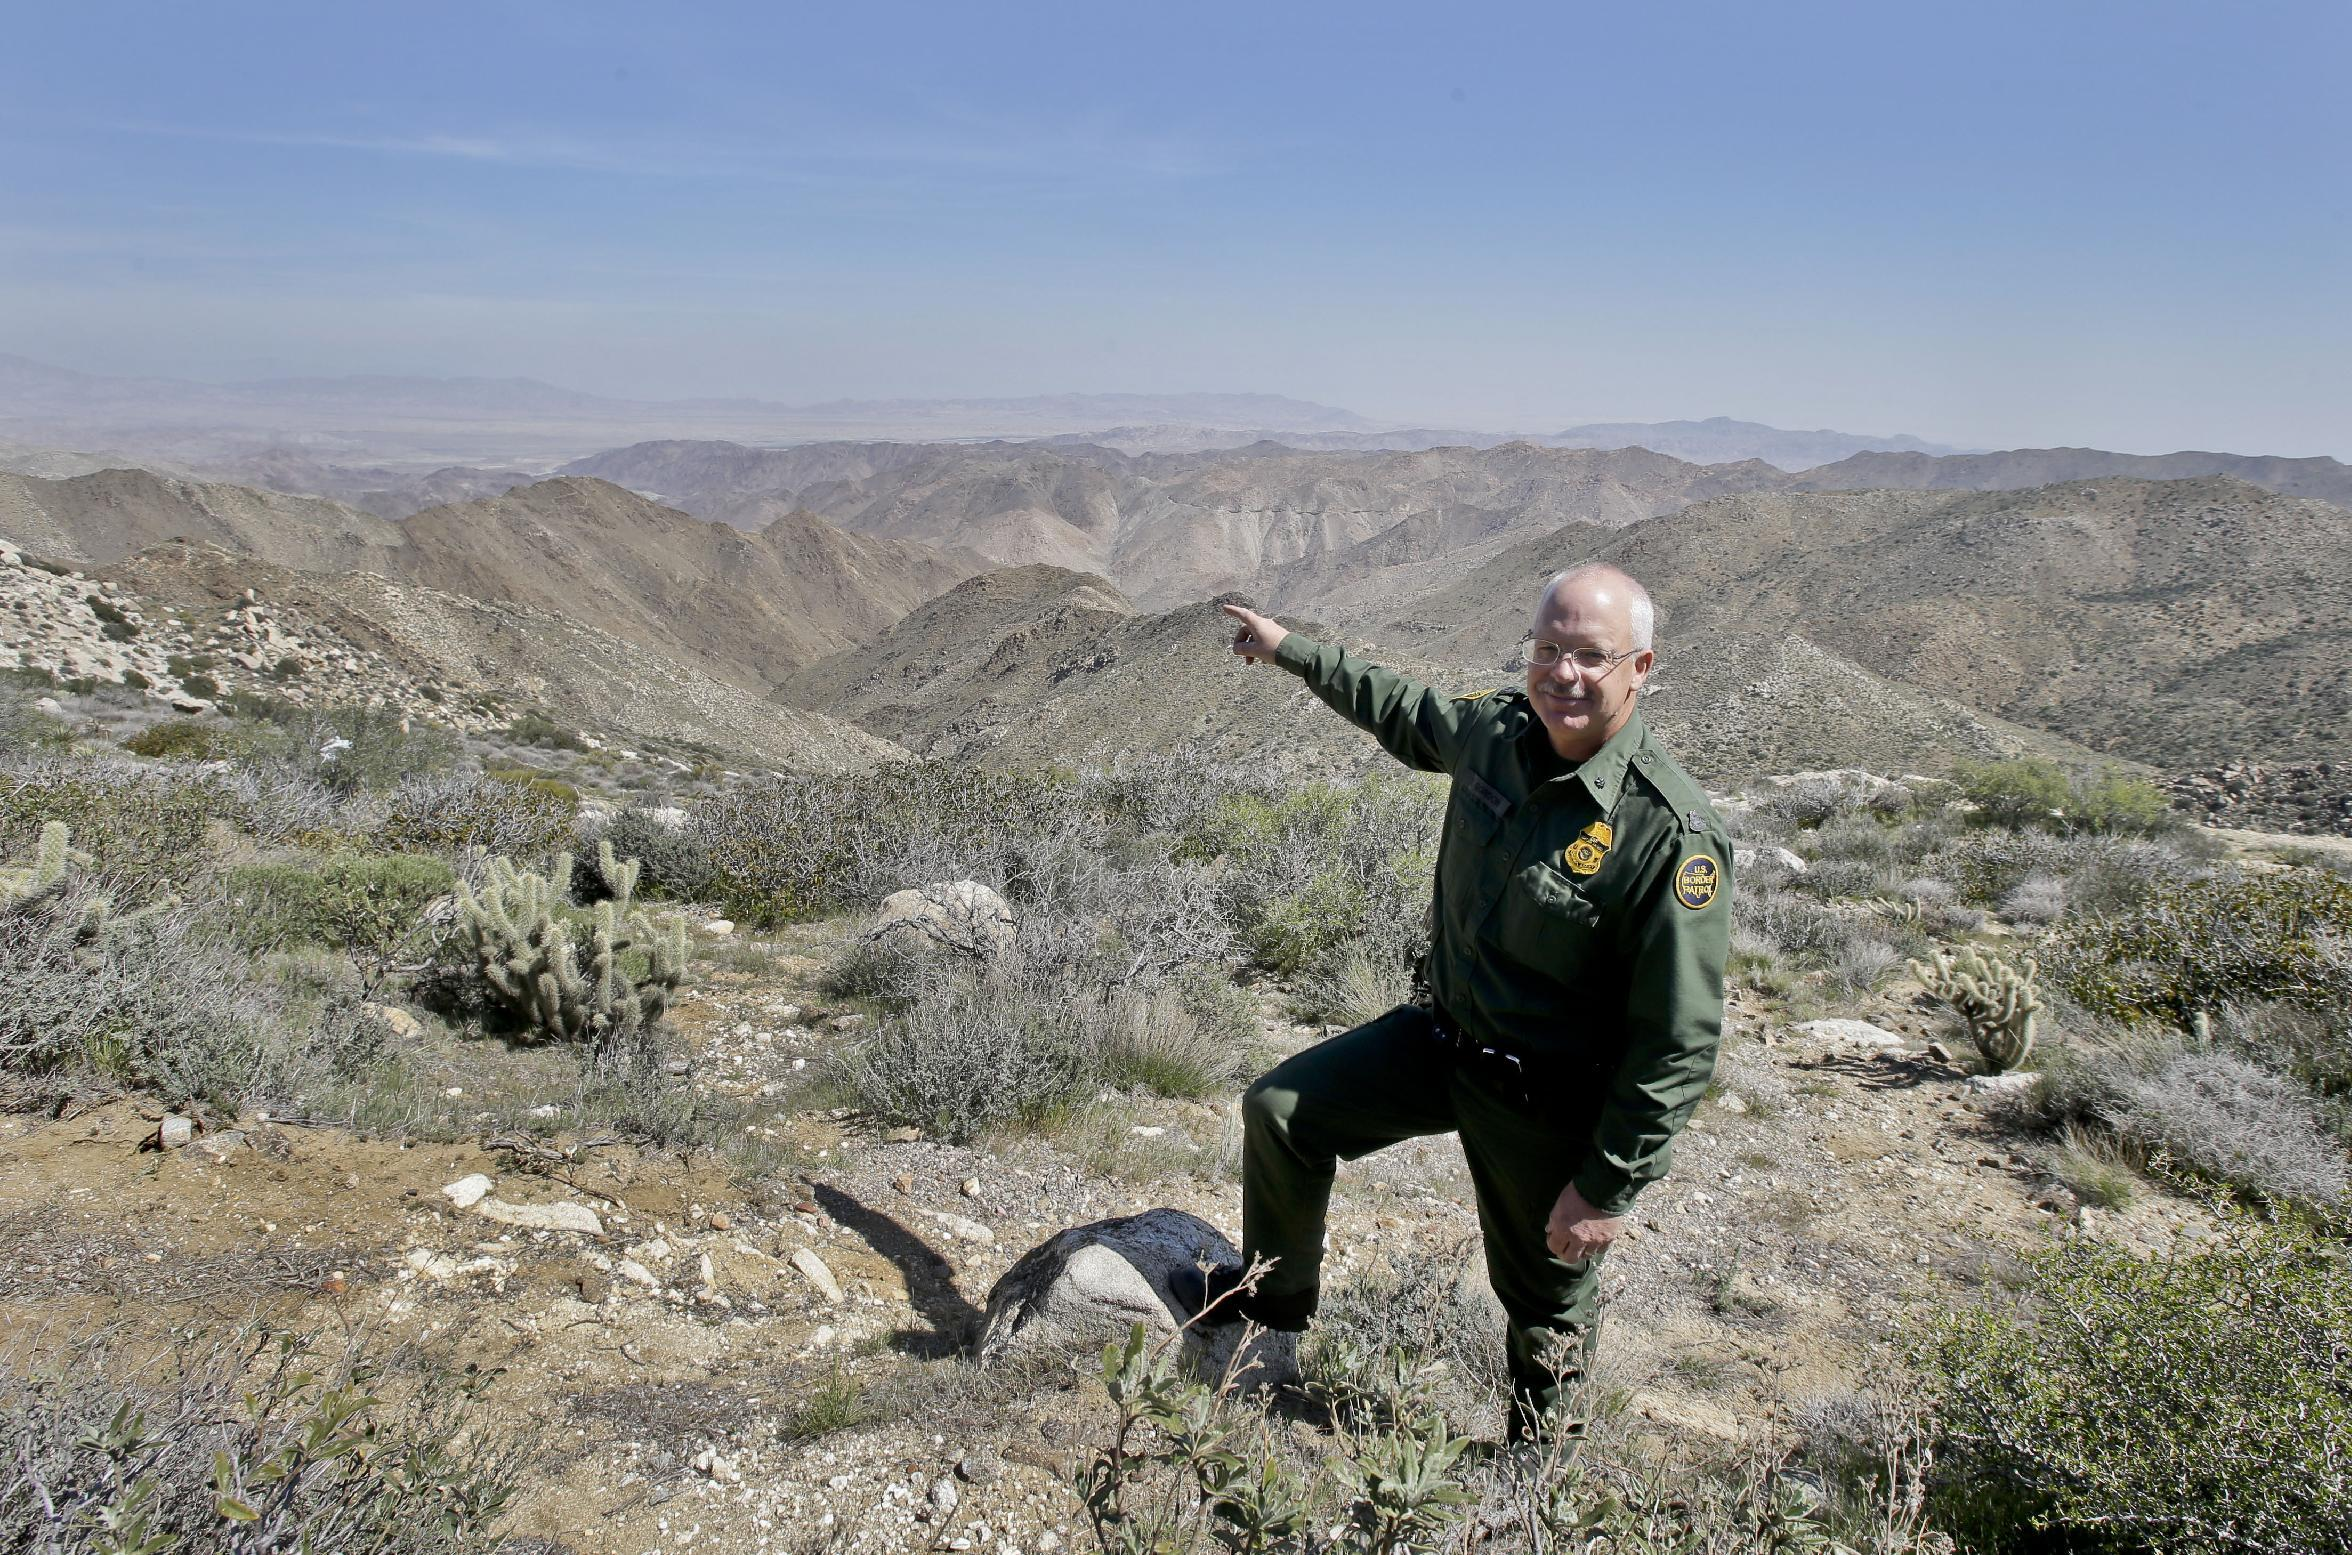 """In this Monday, March 25, 2013 photo, Border Patrol agent Richard Gordon, a 23-year veteran of the agency, points to a route used by illegal immigrants that runs through rugged mountainous terrain in the Boulevard area east of San Diego, in Boulevard, Calif. For the past 16 years, Gordon has been one of the top """"sign-cutters"""" or trackers in the Border Patrol. (AP Photo/Lenny Ignelzi)"""